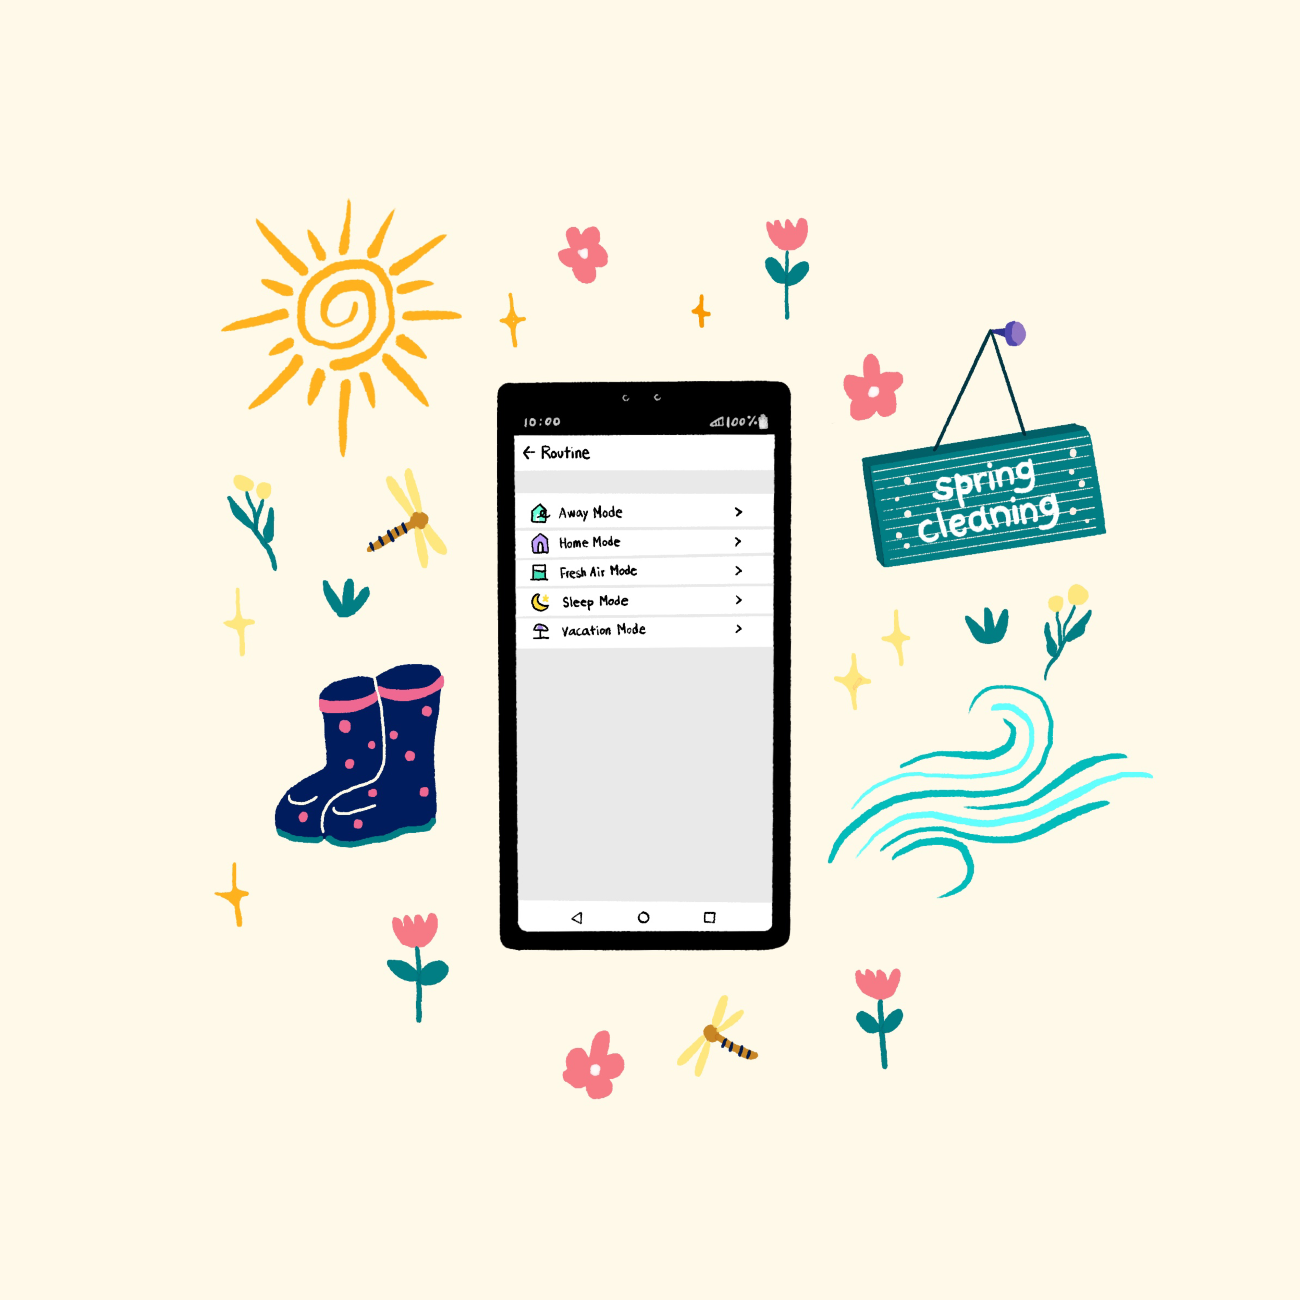 An illustration of a smartphone displaying the LG ThinQ app's Routine feature, with small pictures of flowers, the sun and rainboots surrounding to emphasize spring